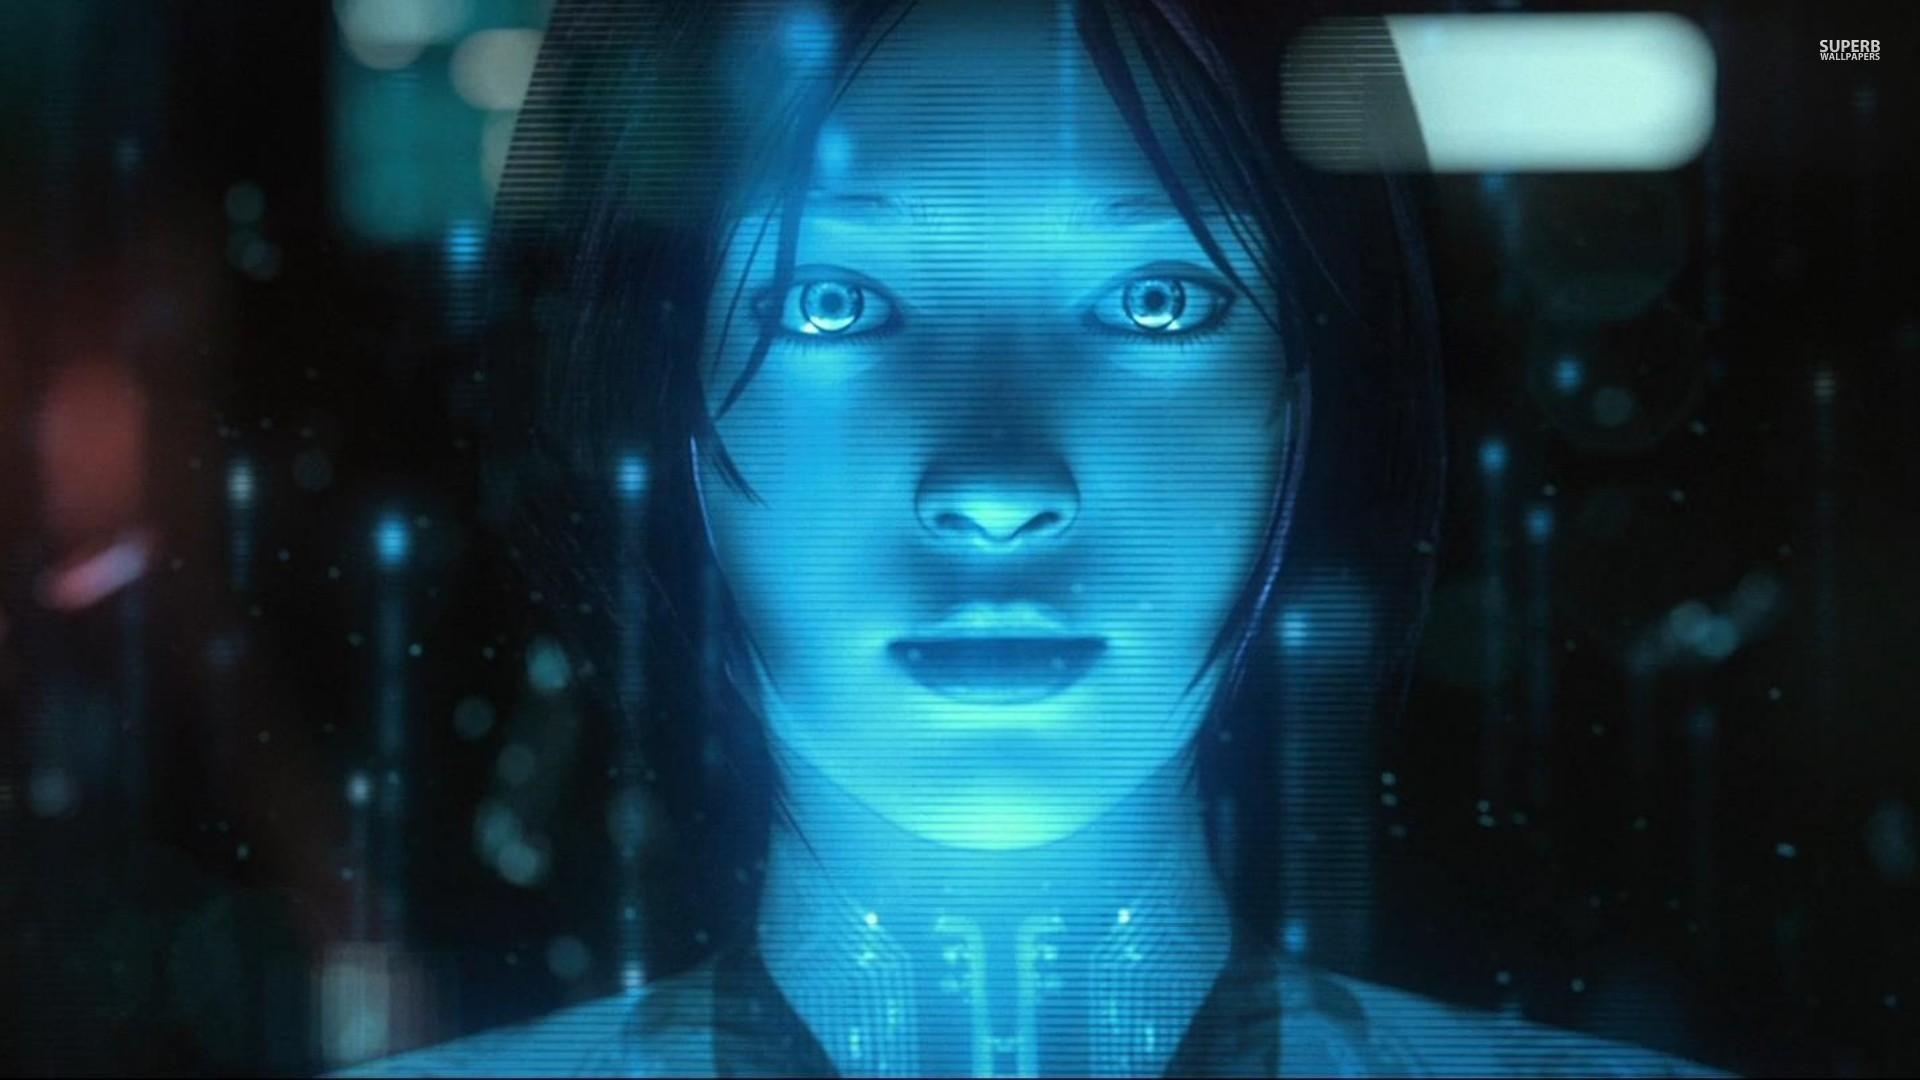 Cortana - Halo 4 wallpaper 1920x1080